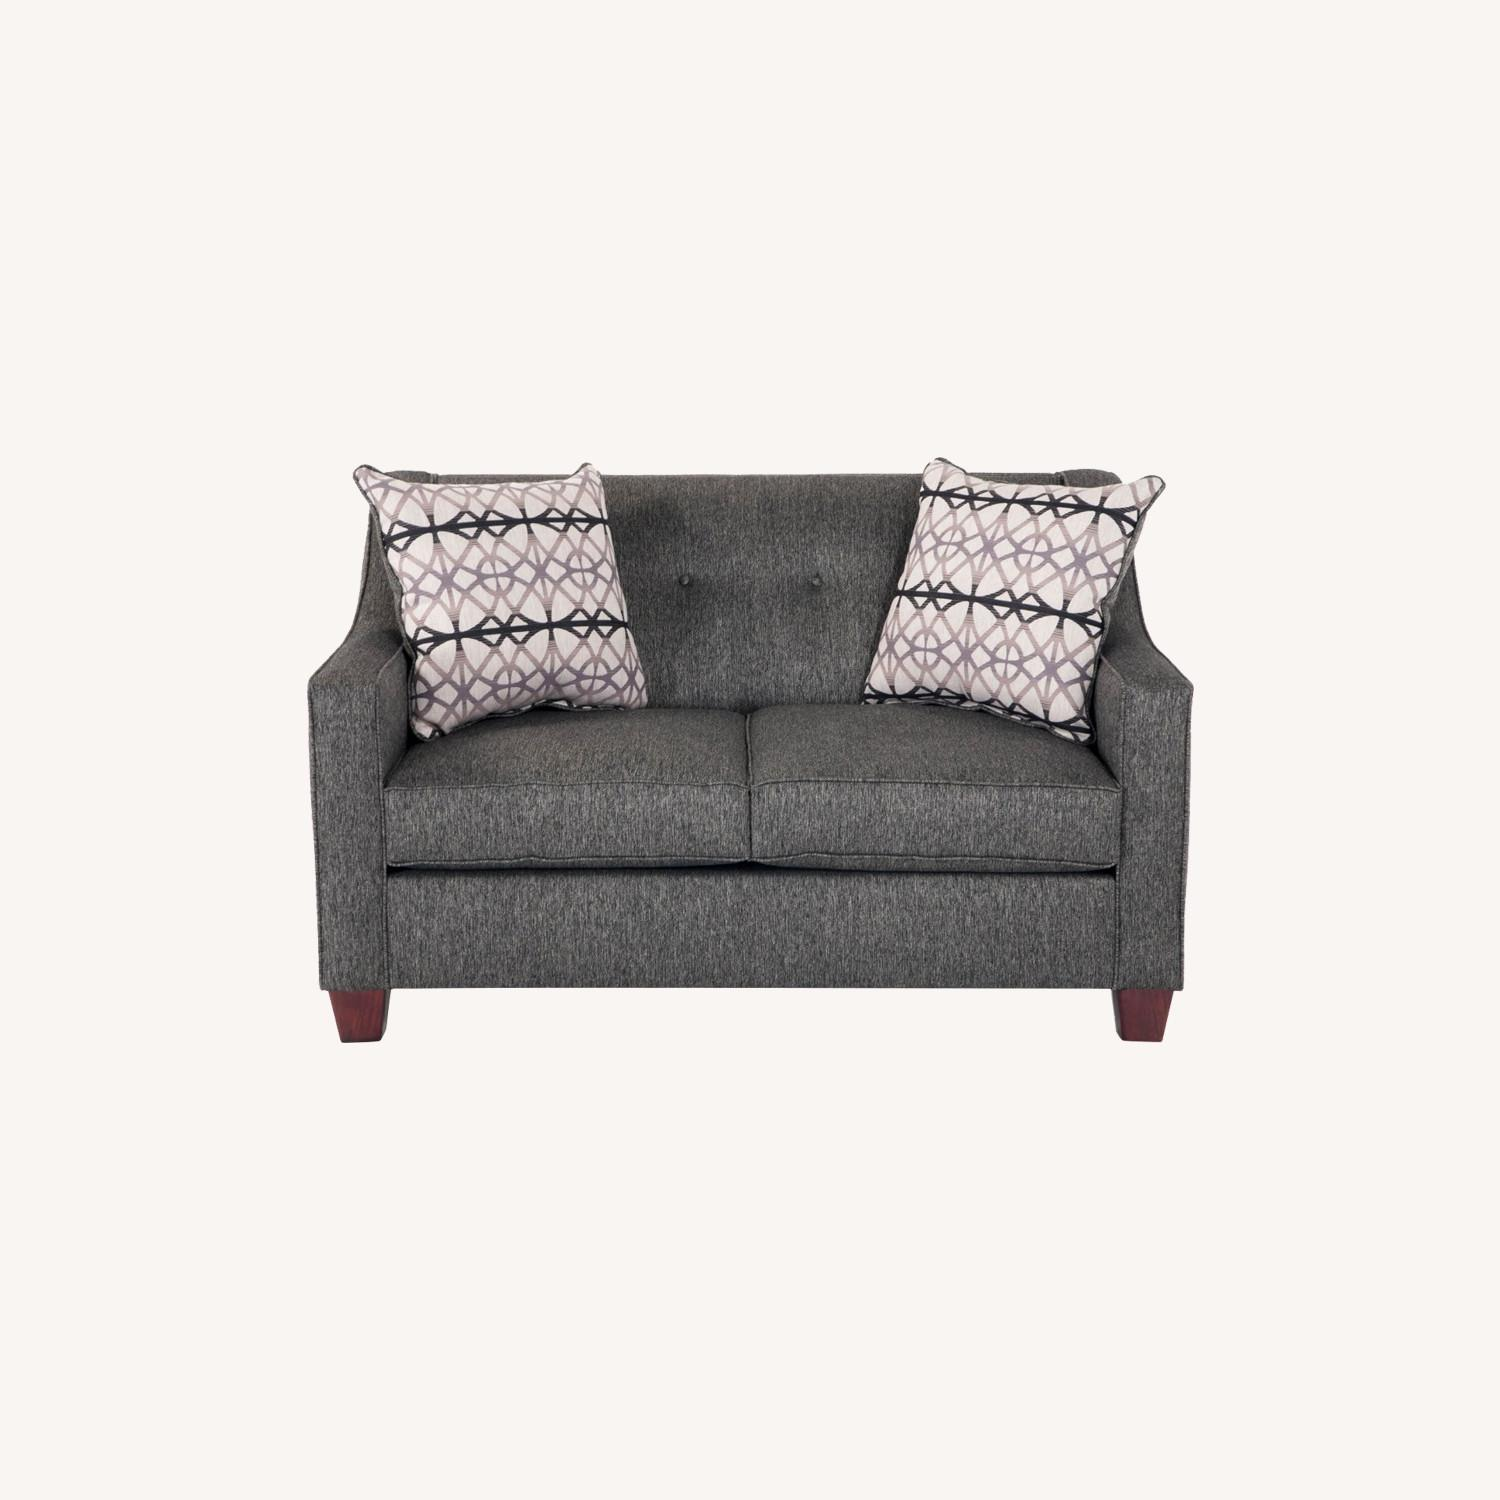 Bob's Discount Stylish & Comfortable Loveseat - image-7